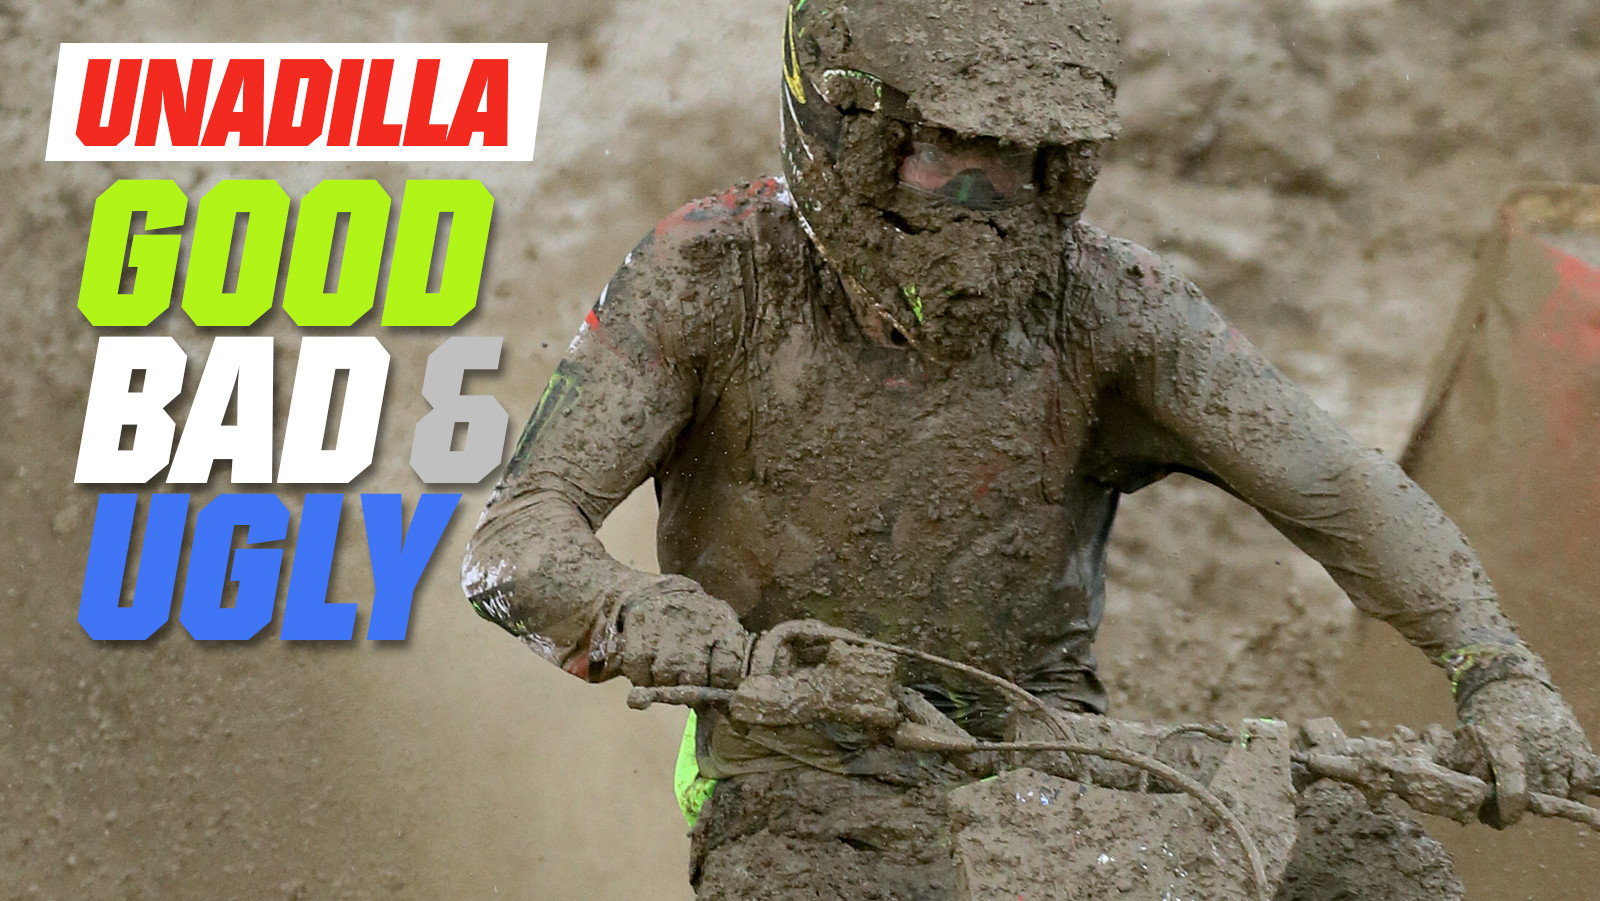 Unadilla - The Good, the Bad, and the Ugly